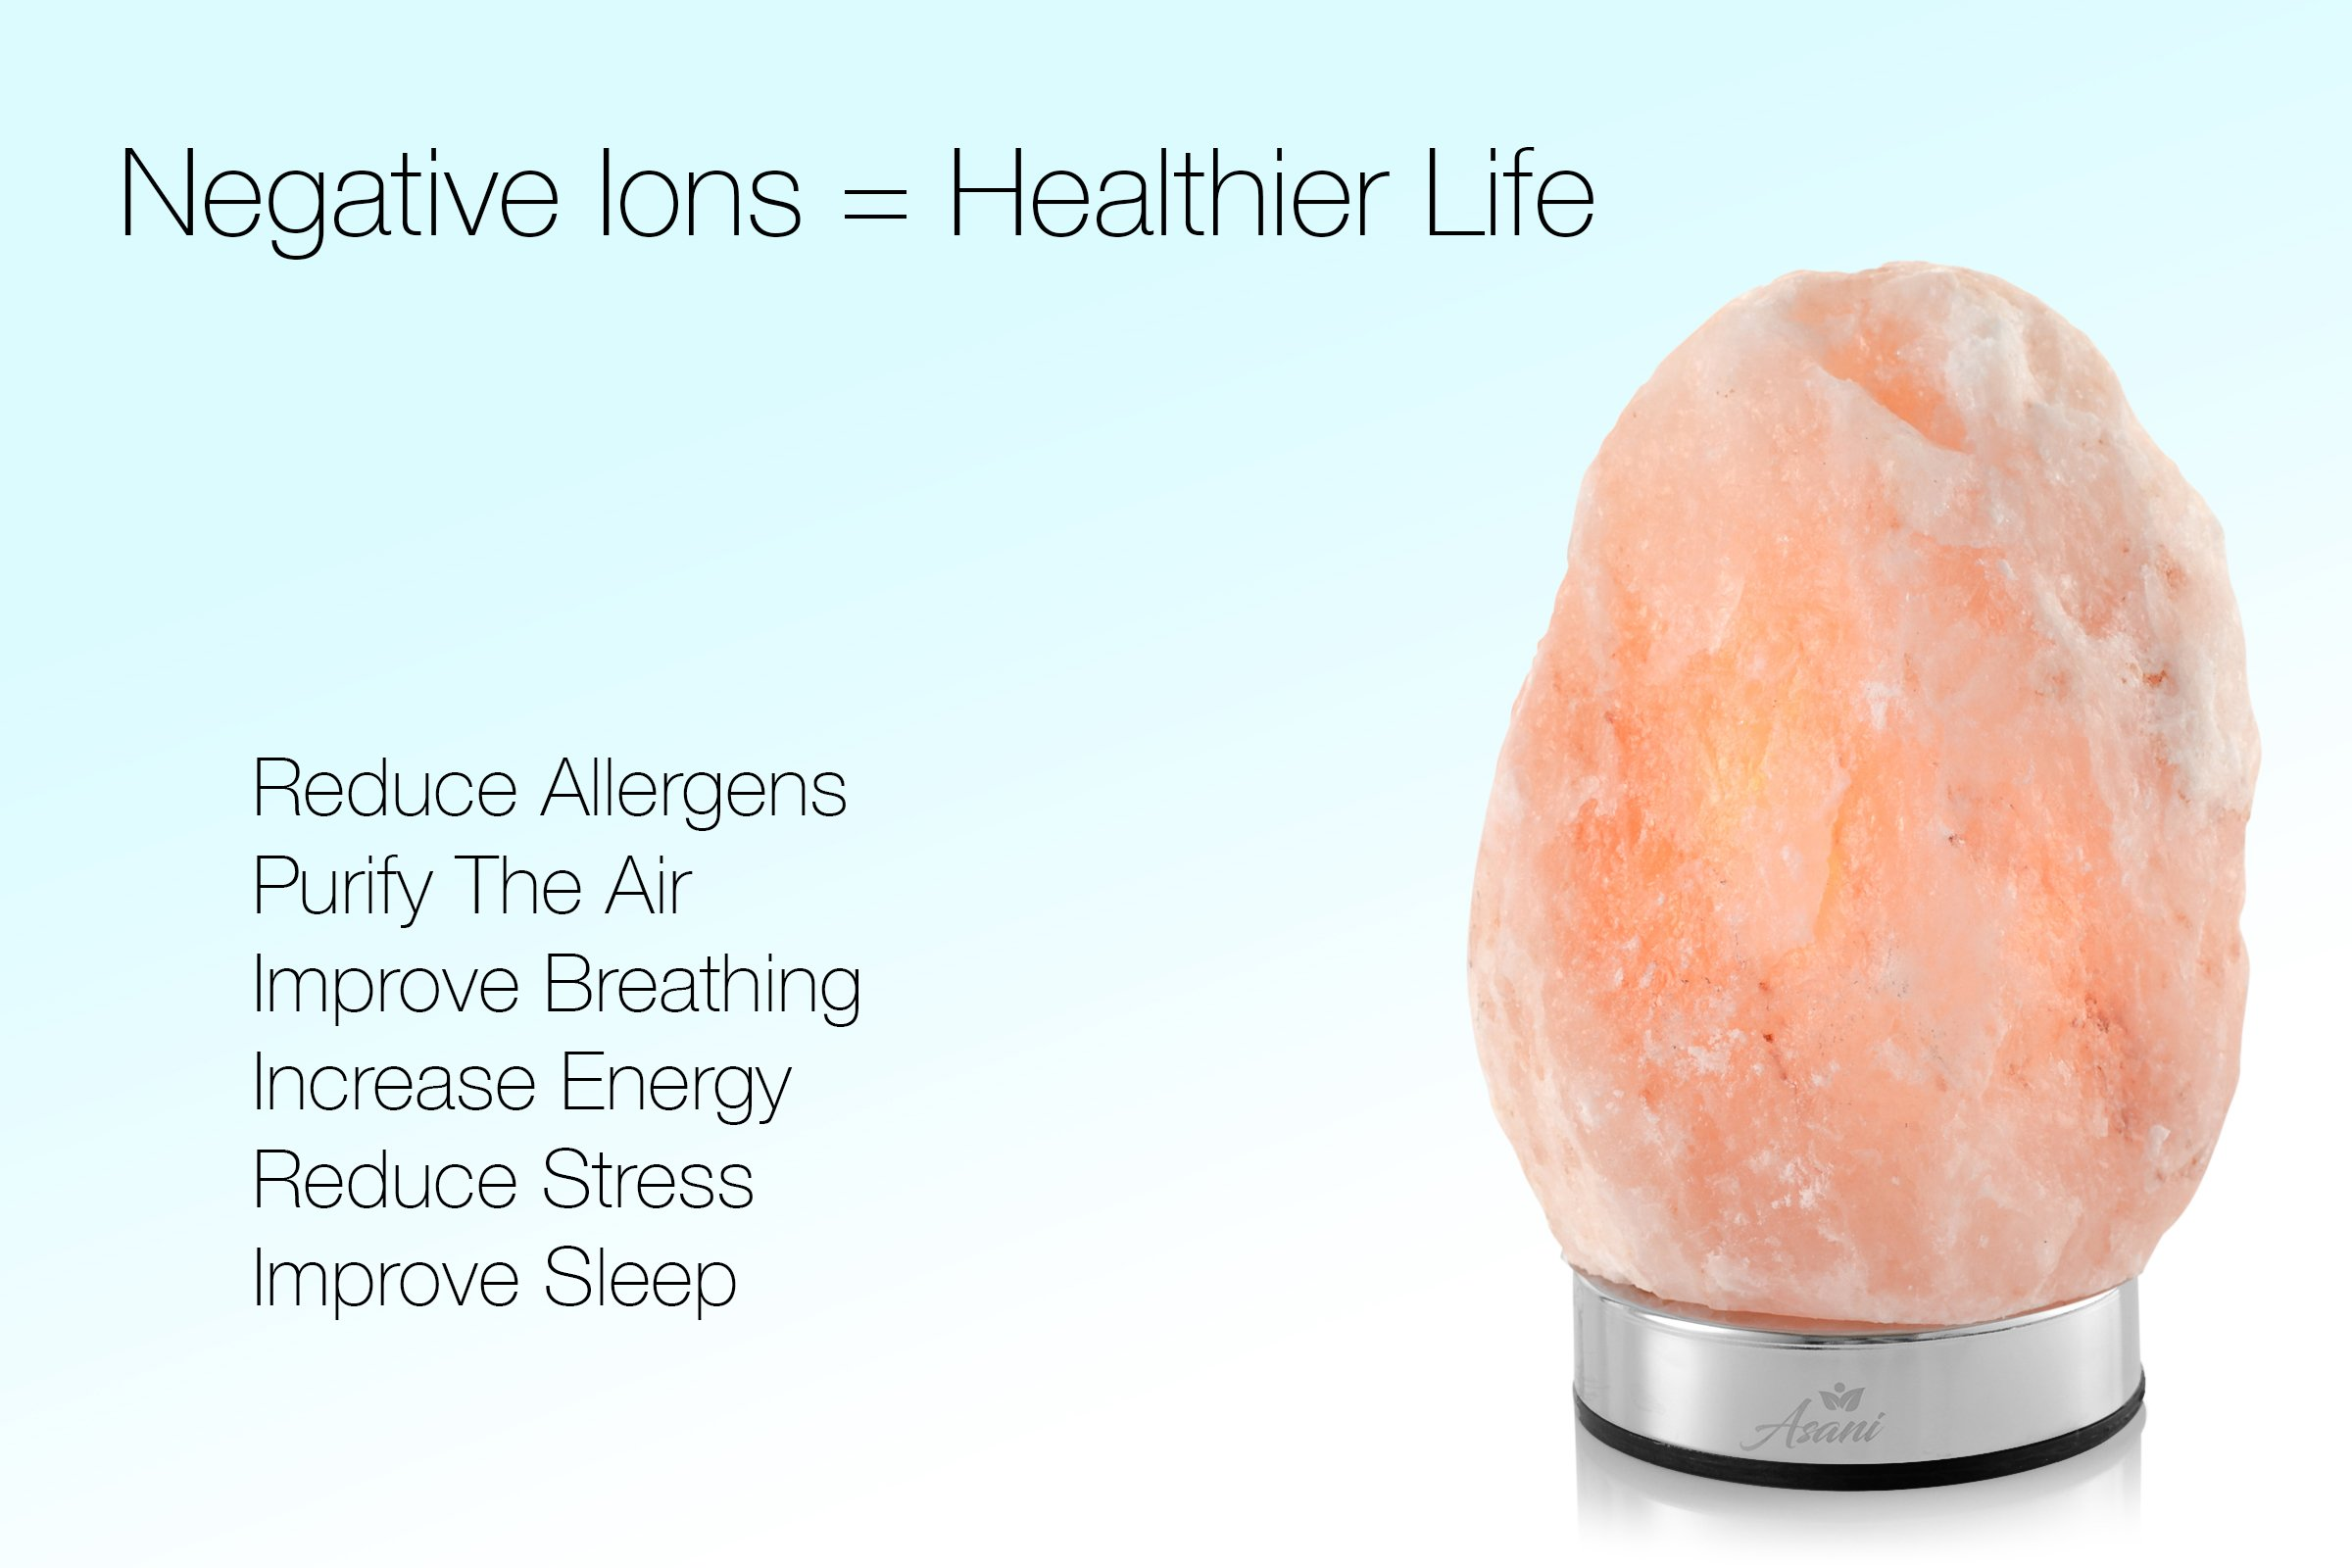 Asani Himalayan Light Salt Crystal Lamp (7-11 lbs, 8-10'' Height) WITH FREE GIFT BOX | Metal Dimmer Touch Base | Hand Crafted Ionic HPS Pink Rock Lamps for Natural Air Purifying and Lighting by Asani (Image #6)